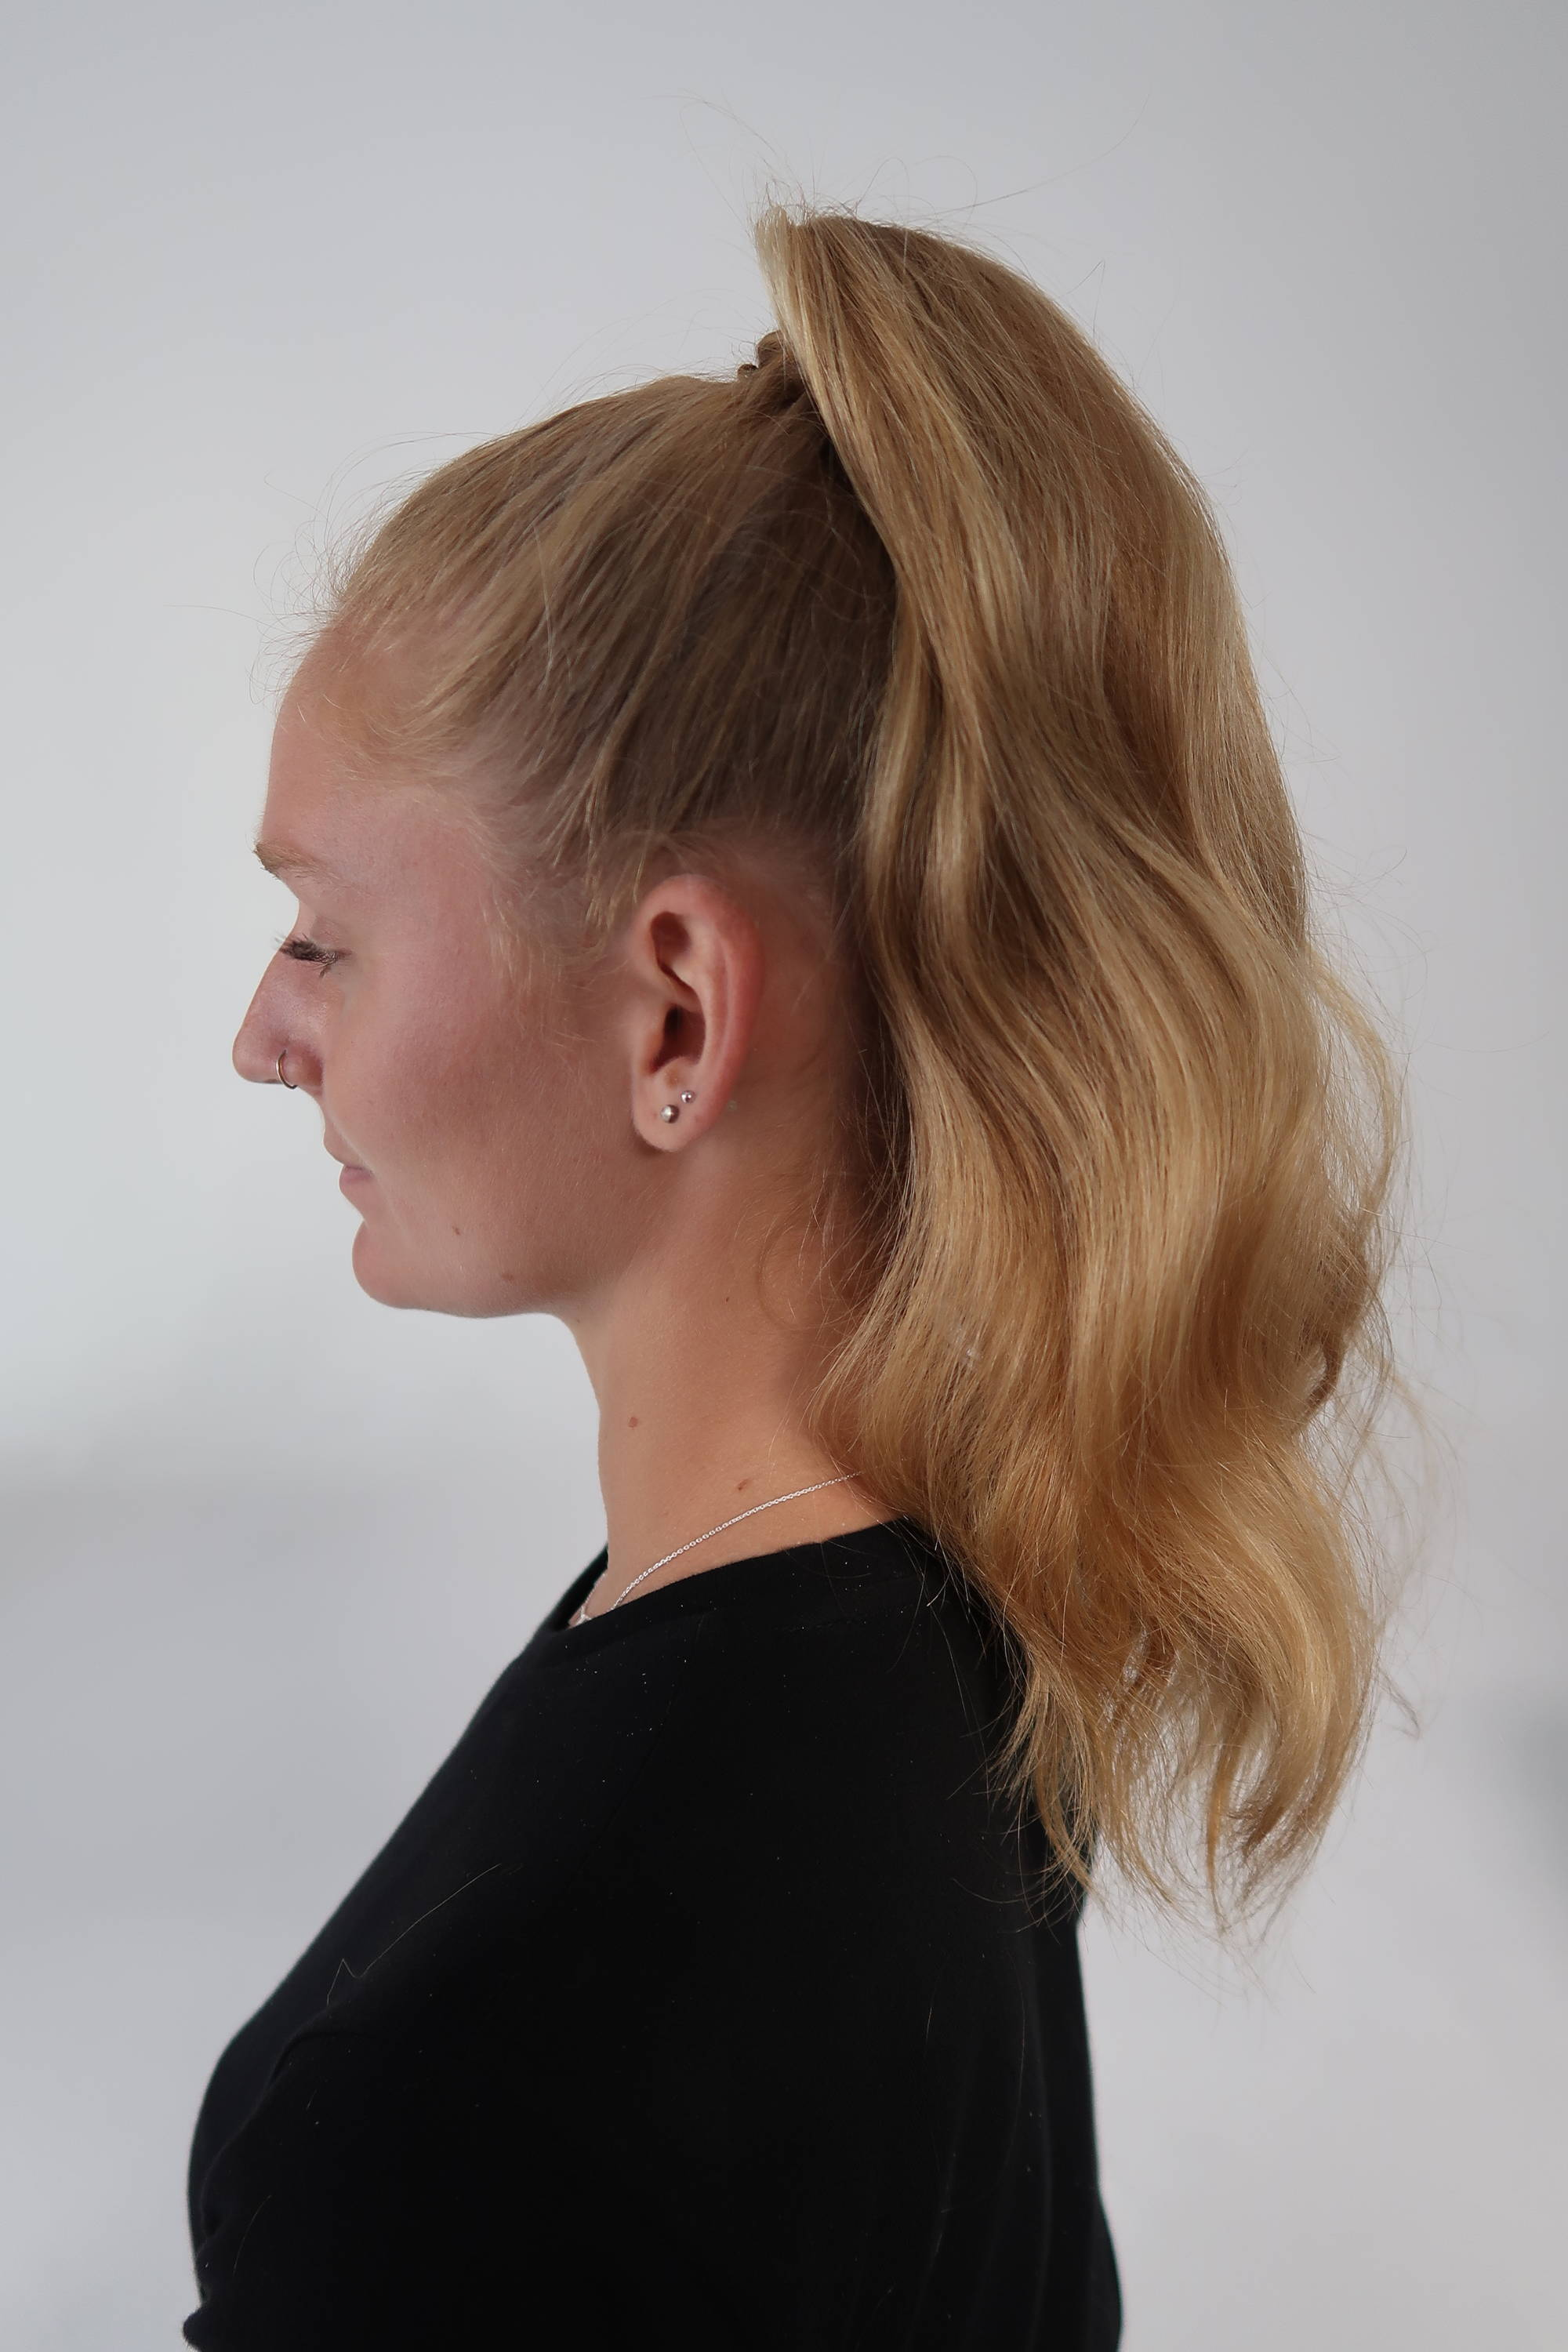 photo of the backview of a blonde woman's wavy ponytail hairstyle